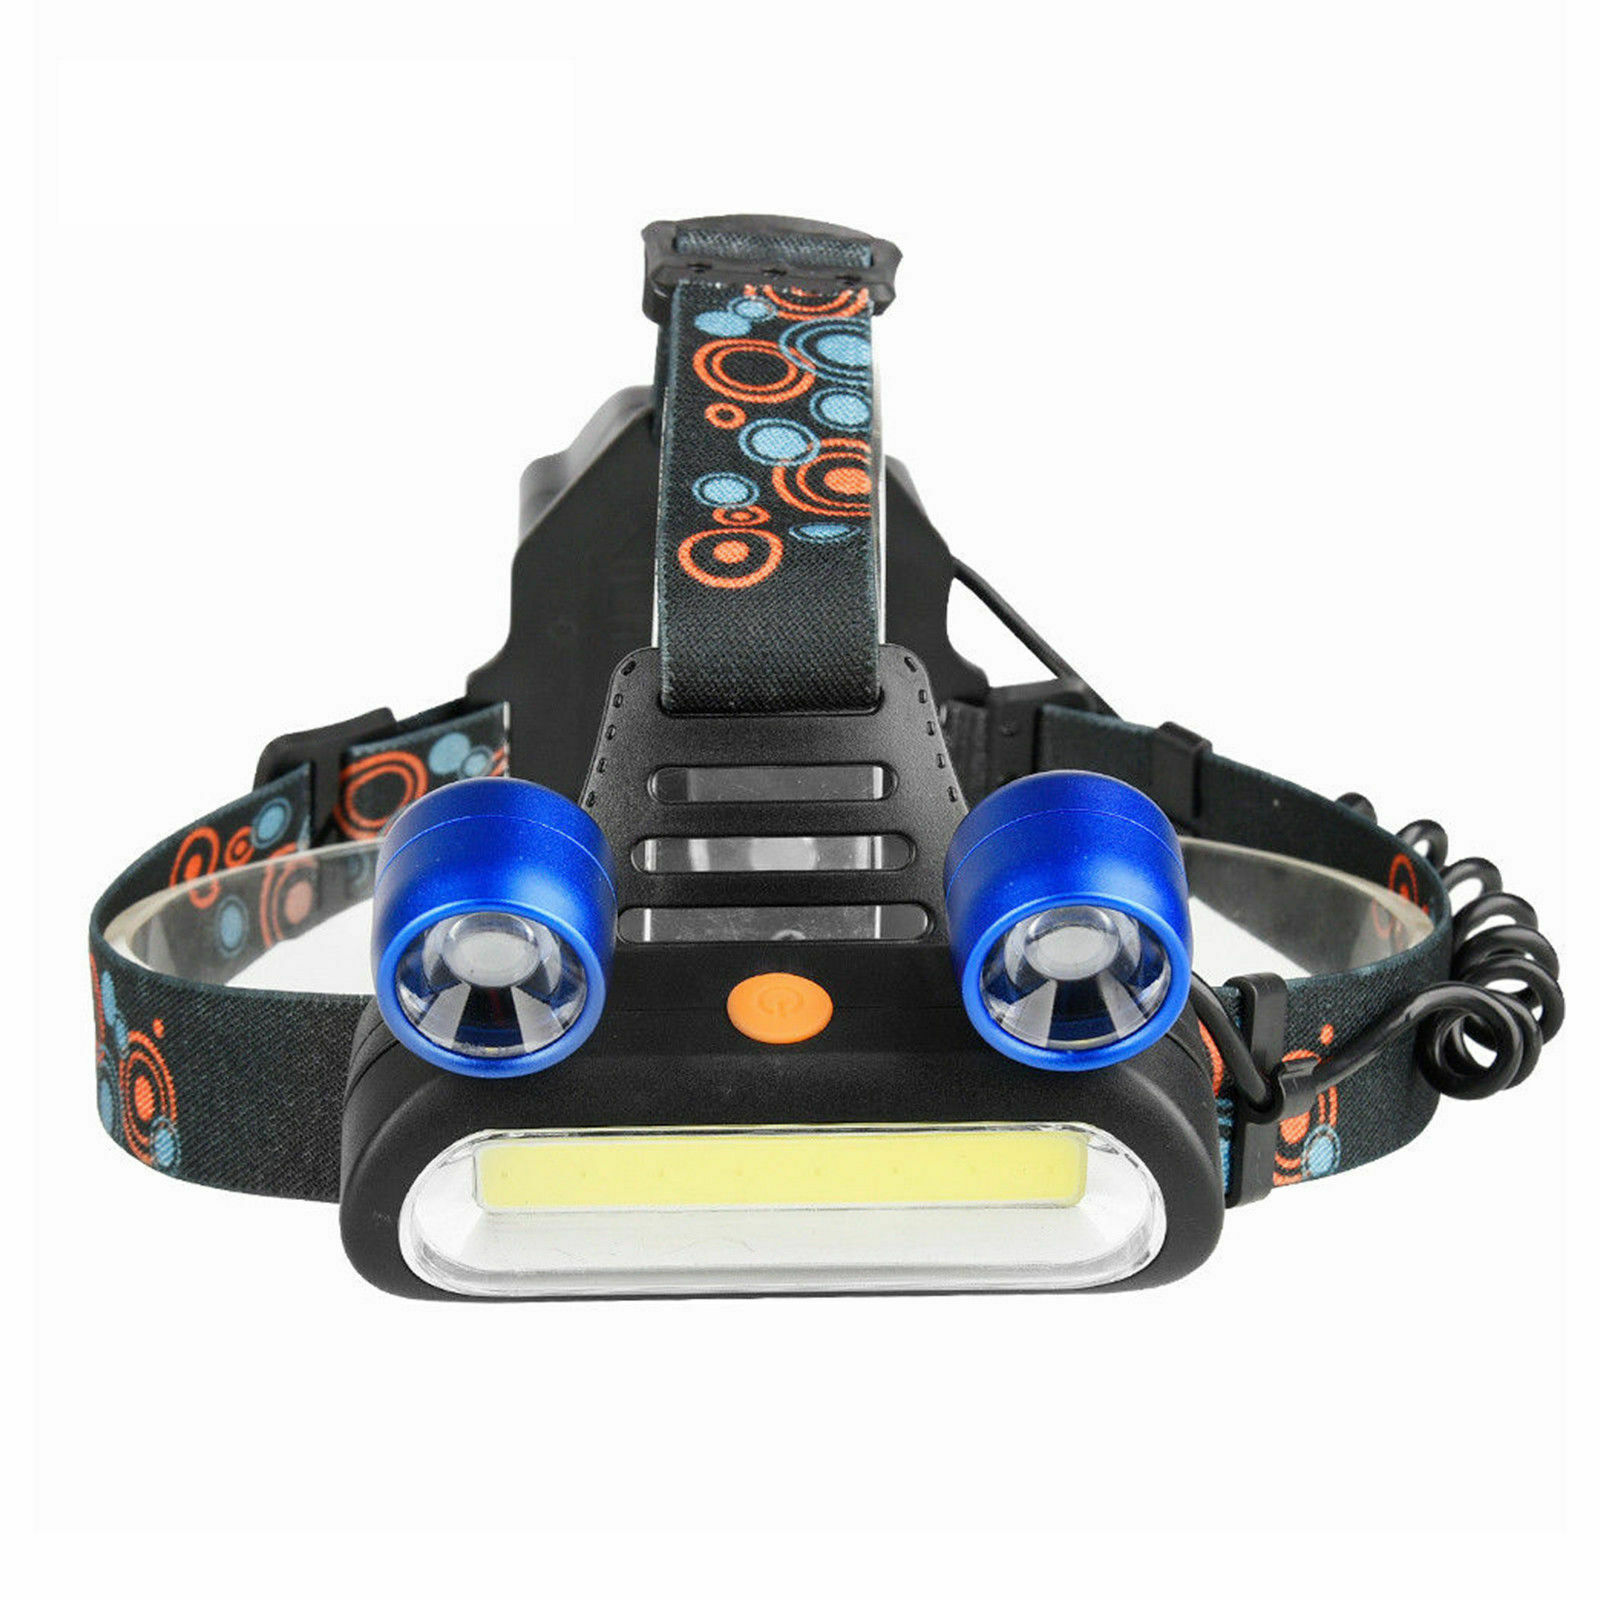 1800LM 2 x XM-L T6 LED COB USB Rechargeable Headlamp Head Light Flashlight Torch Camping & Hiking